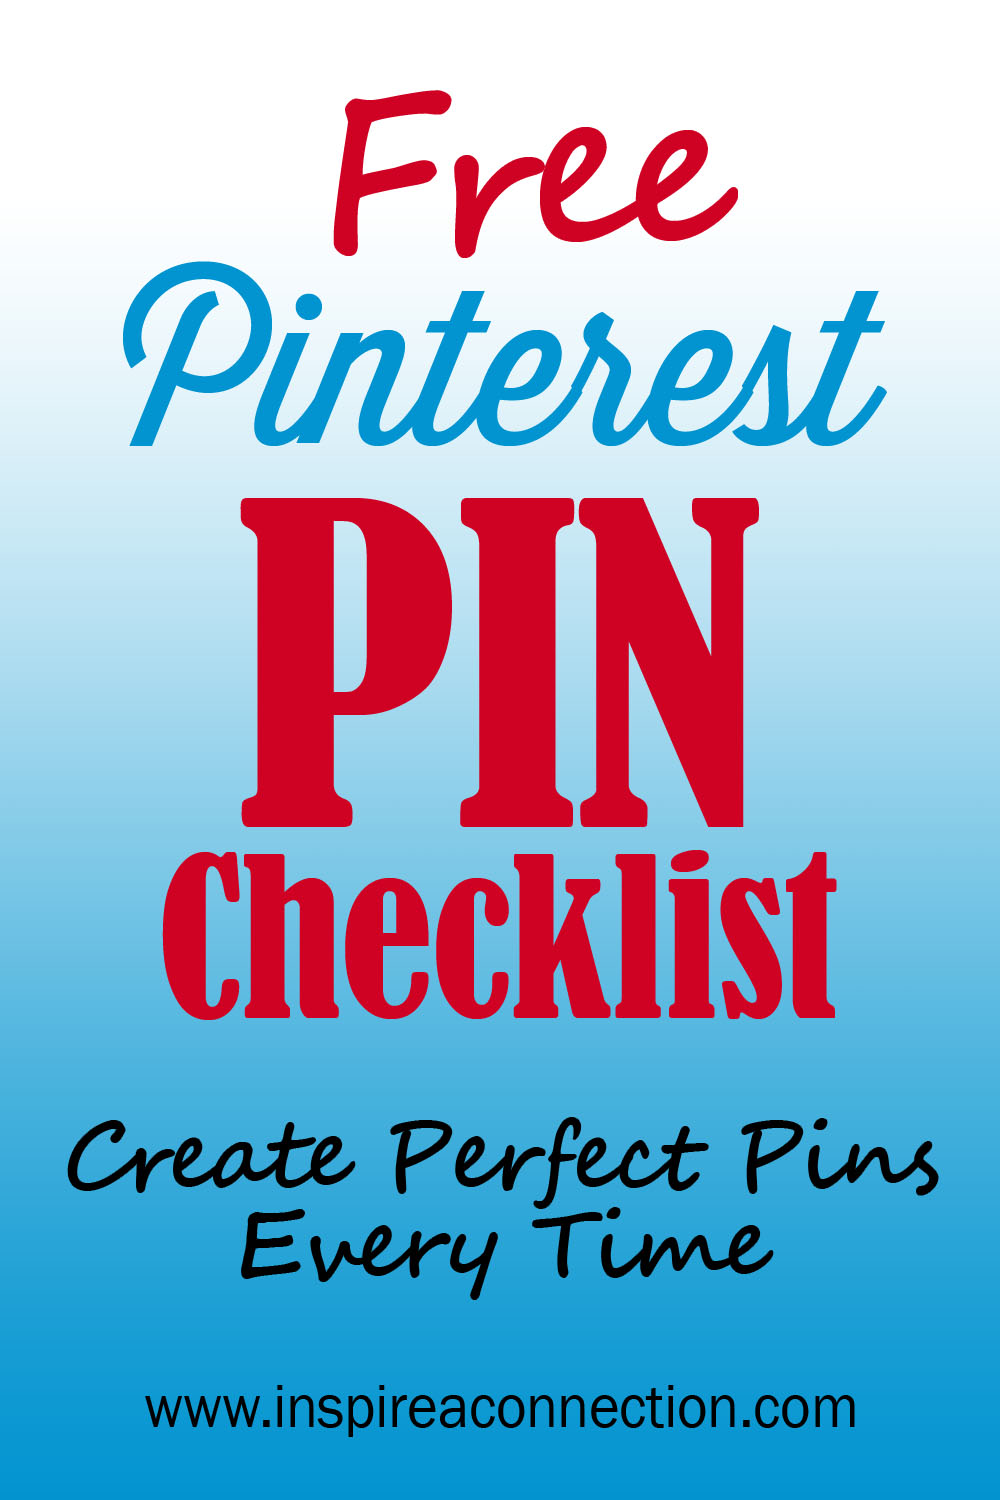 Free Pinterest Pin Checklist.jpg